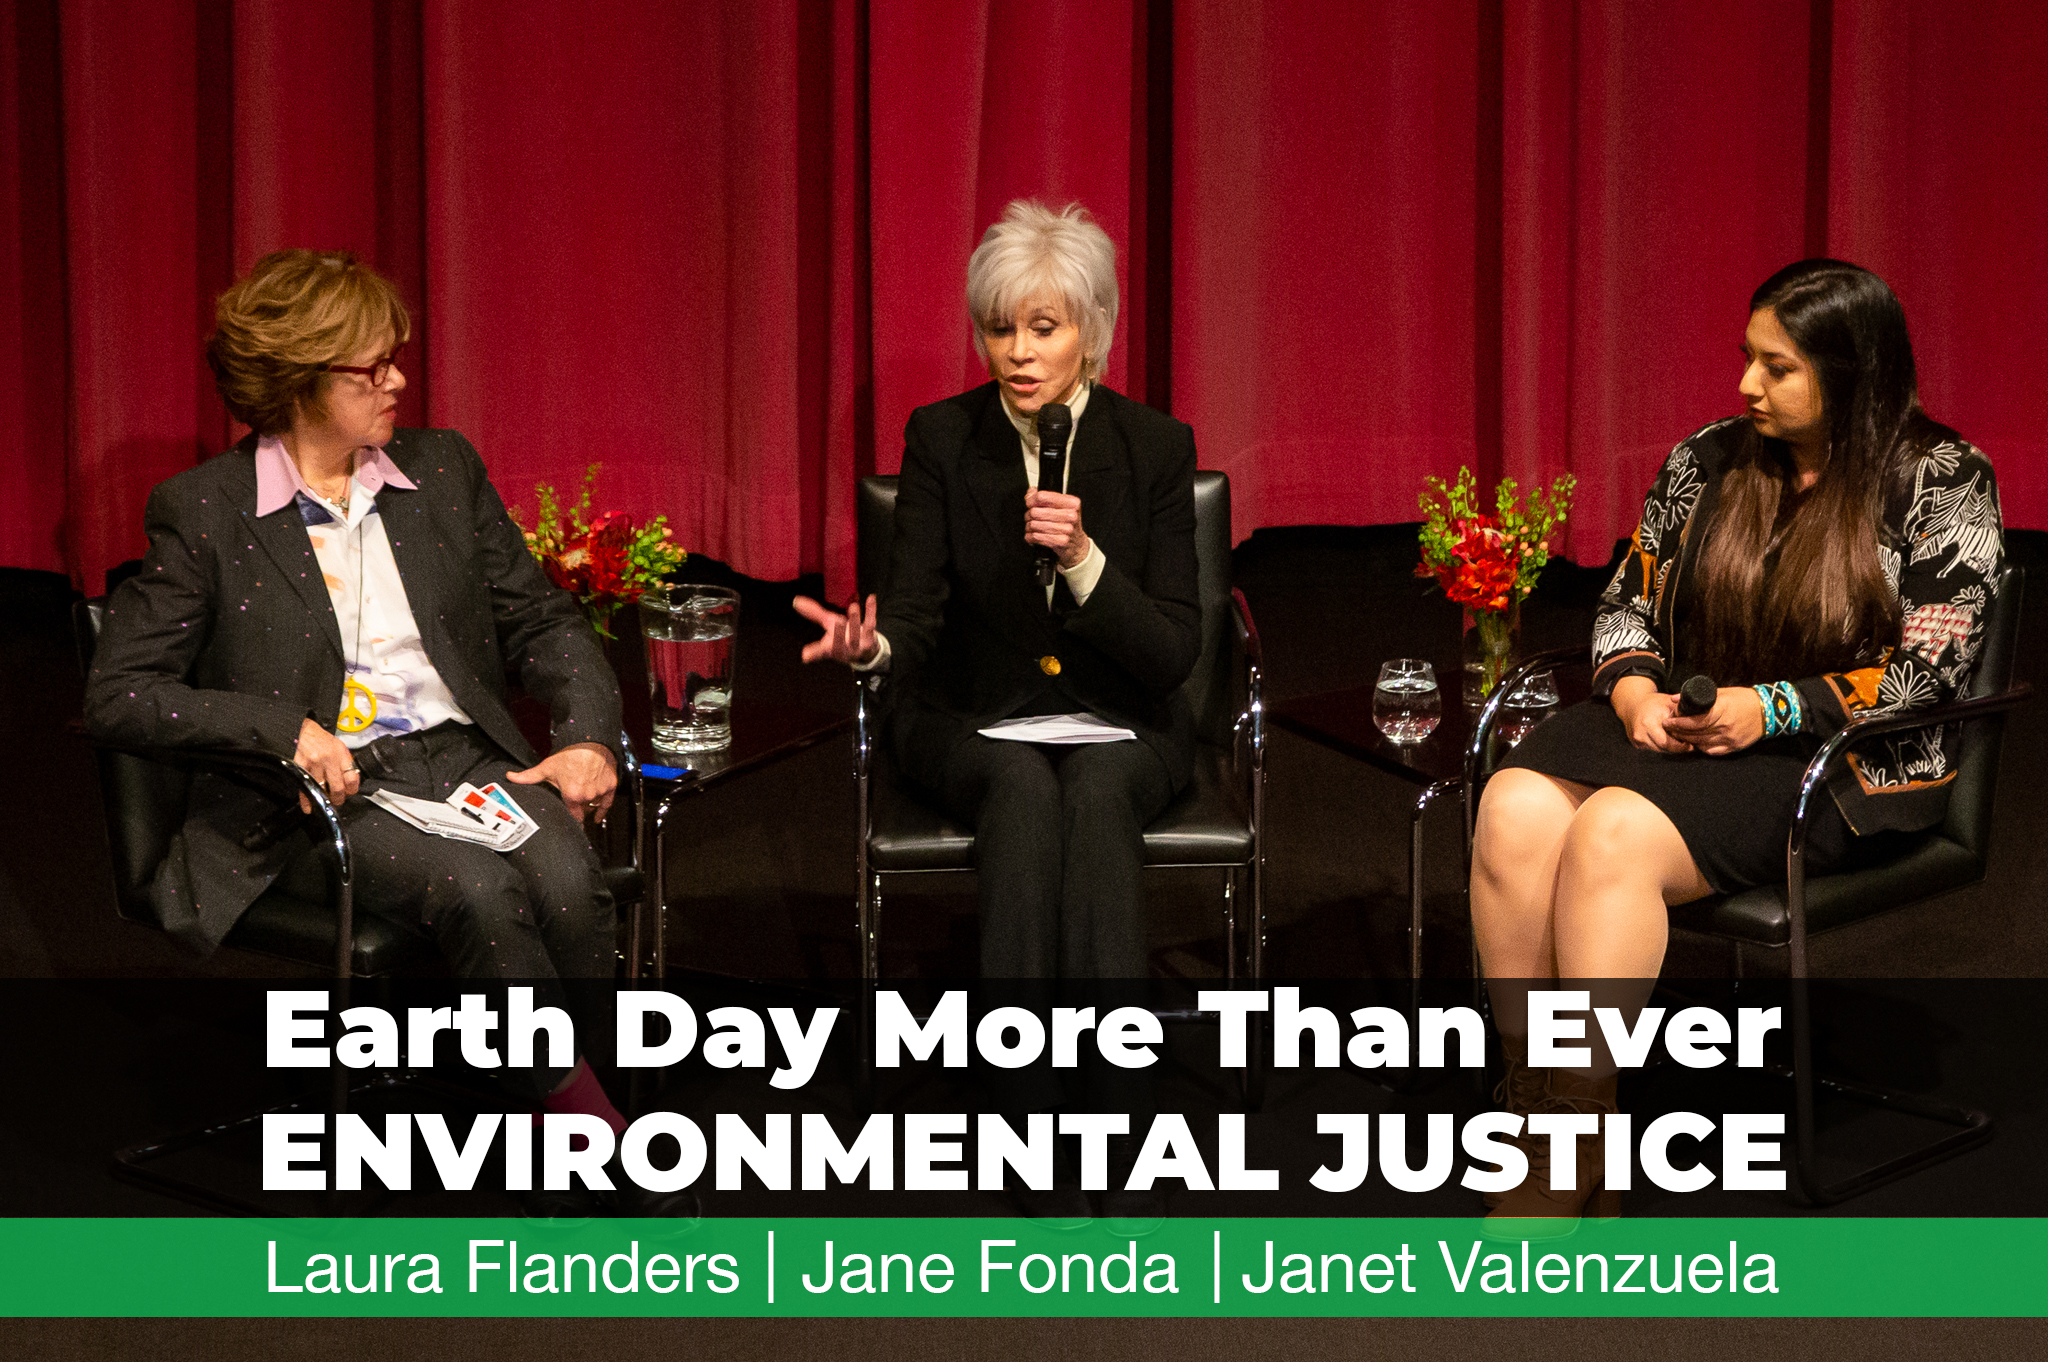 environmental justice this earth day more than ever